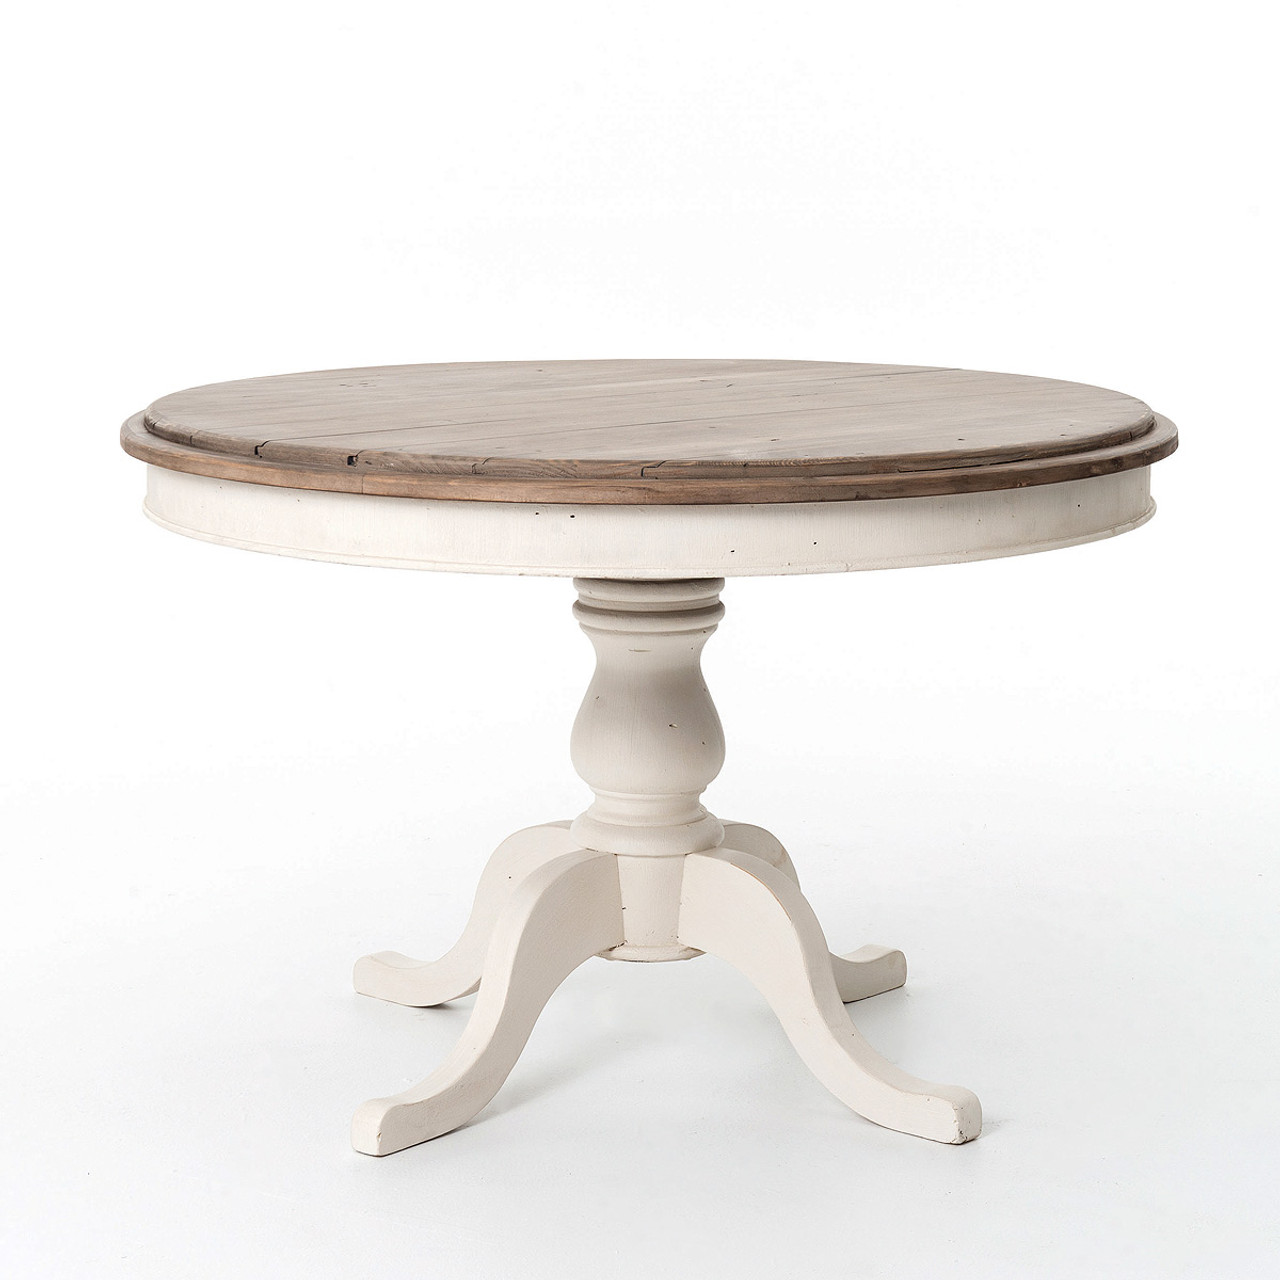 cottage round pedestal white kitchen table 47"